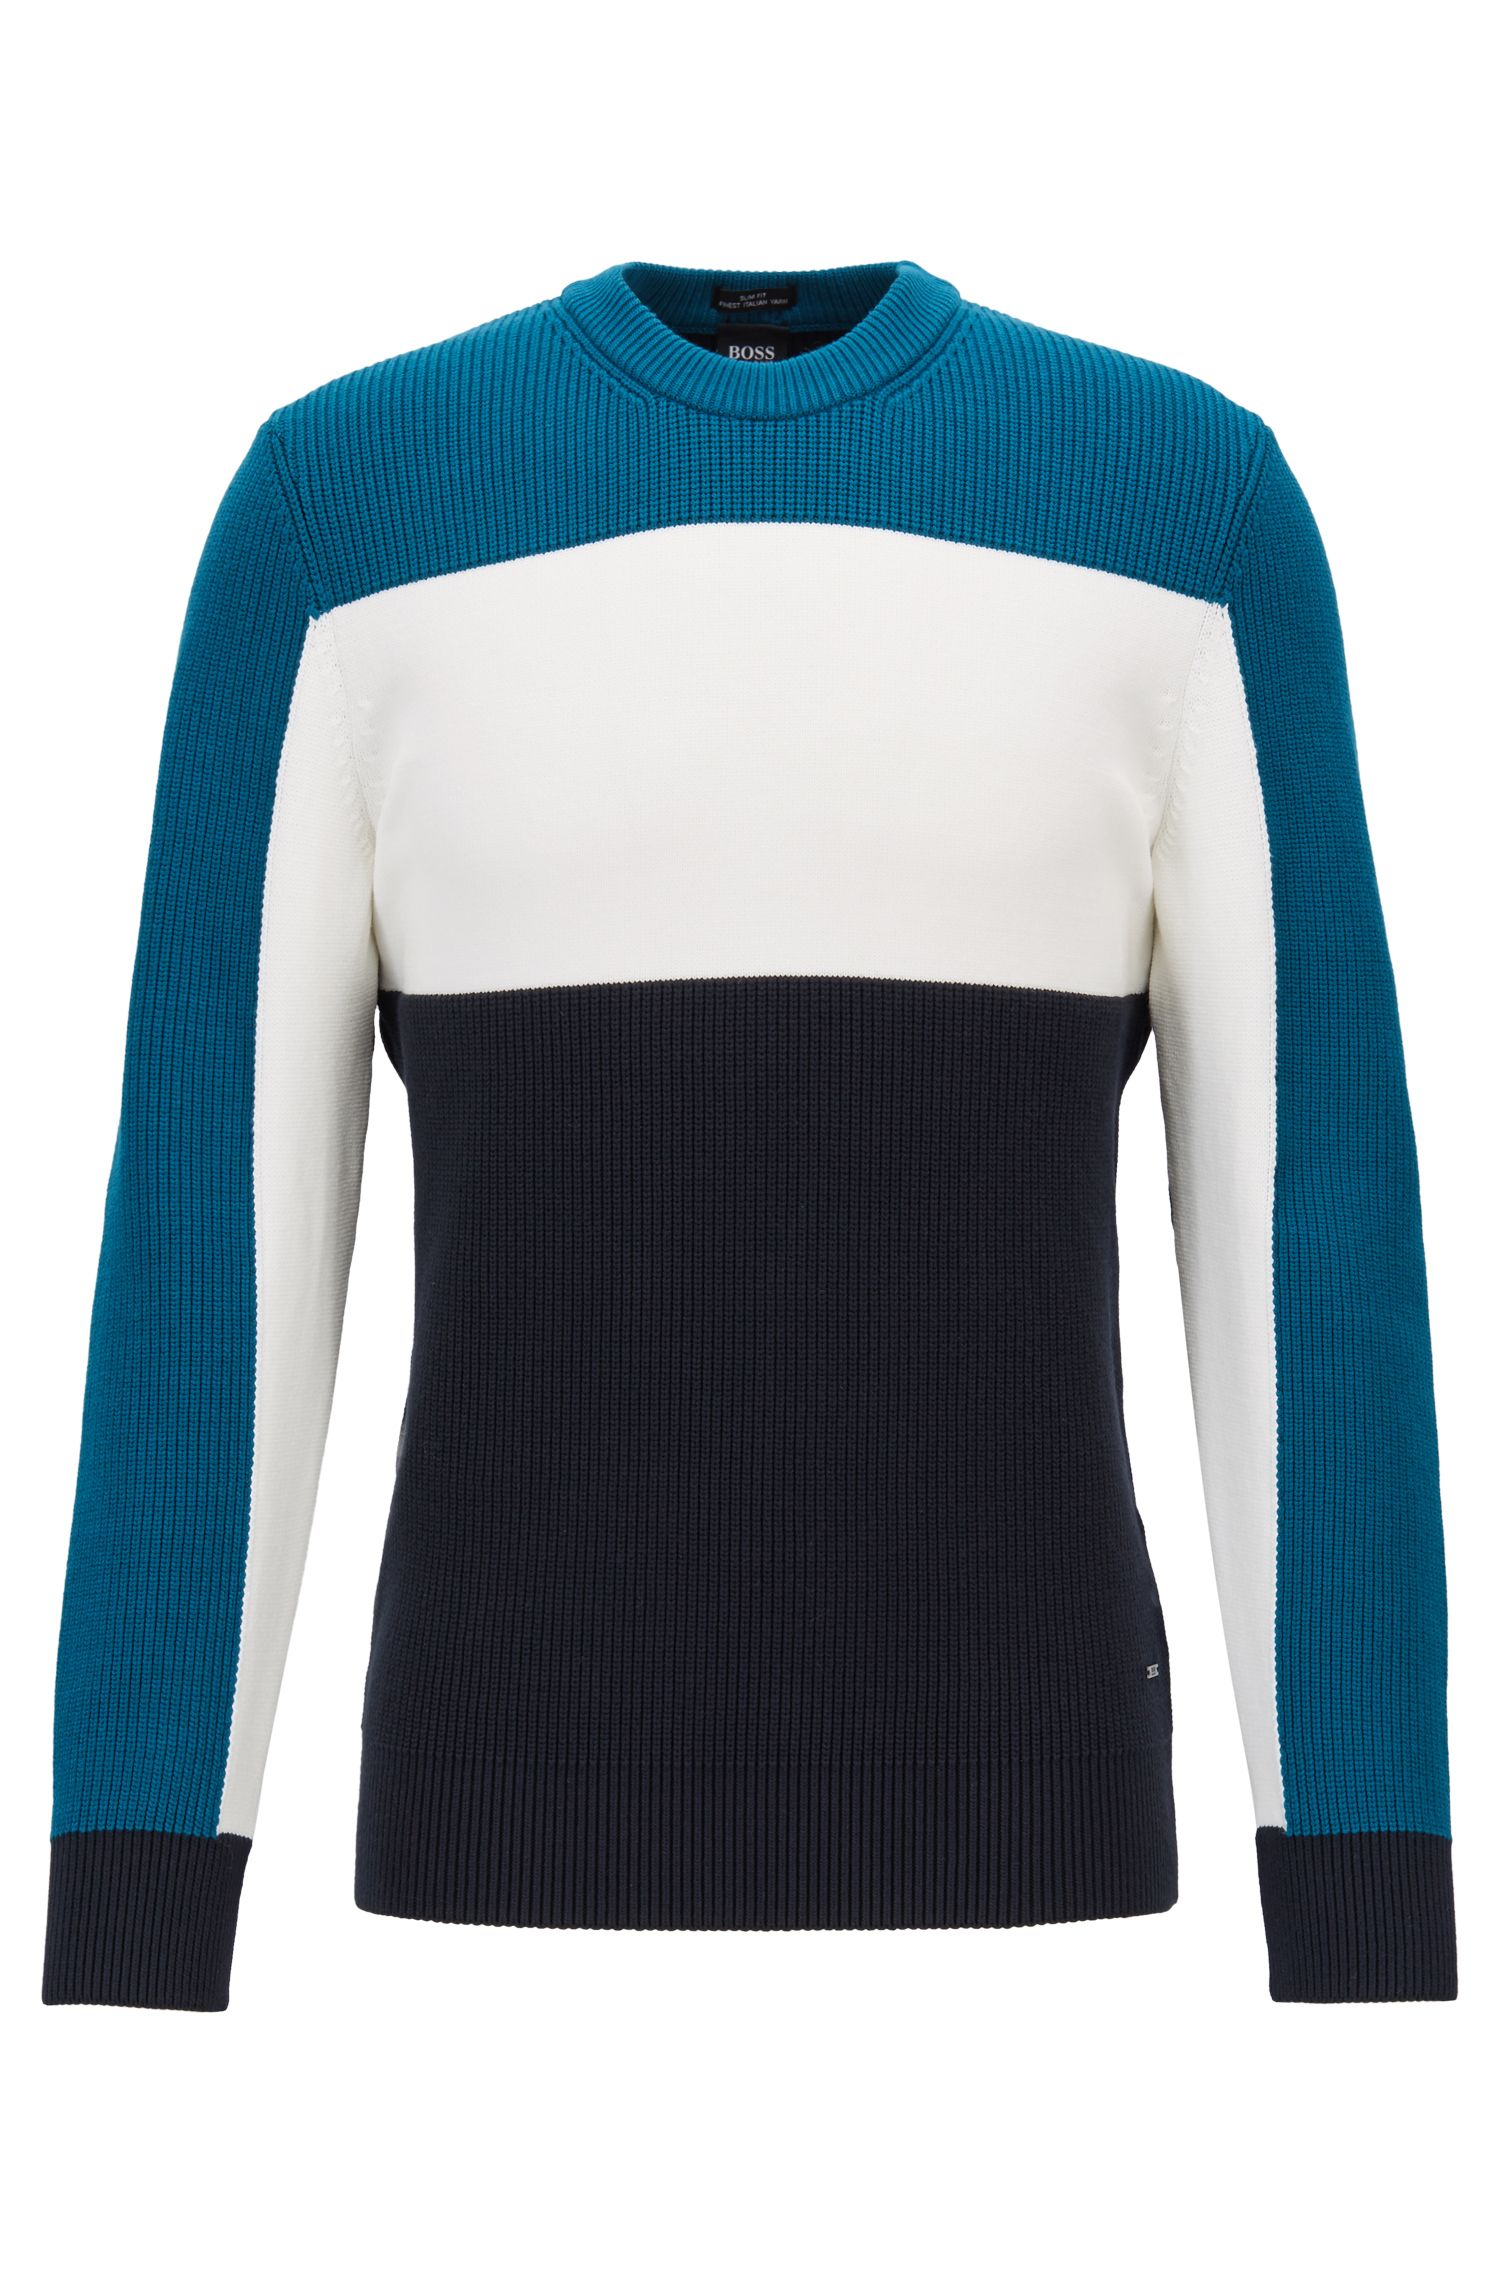 Pullover in Colour-Block-Optik mit Struktur-Mix, Blau